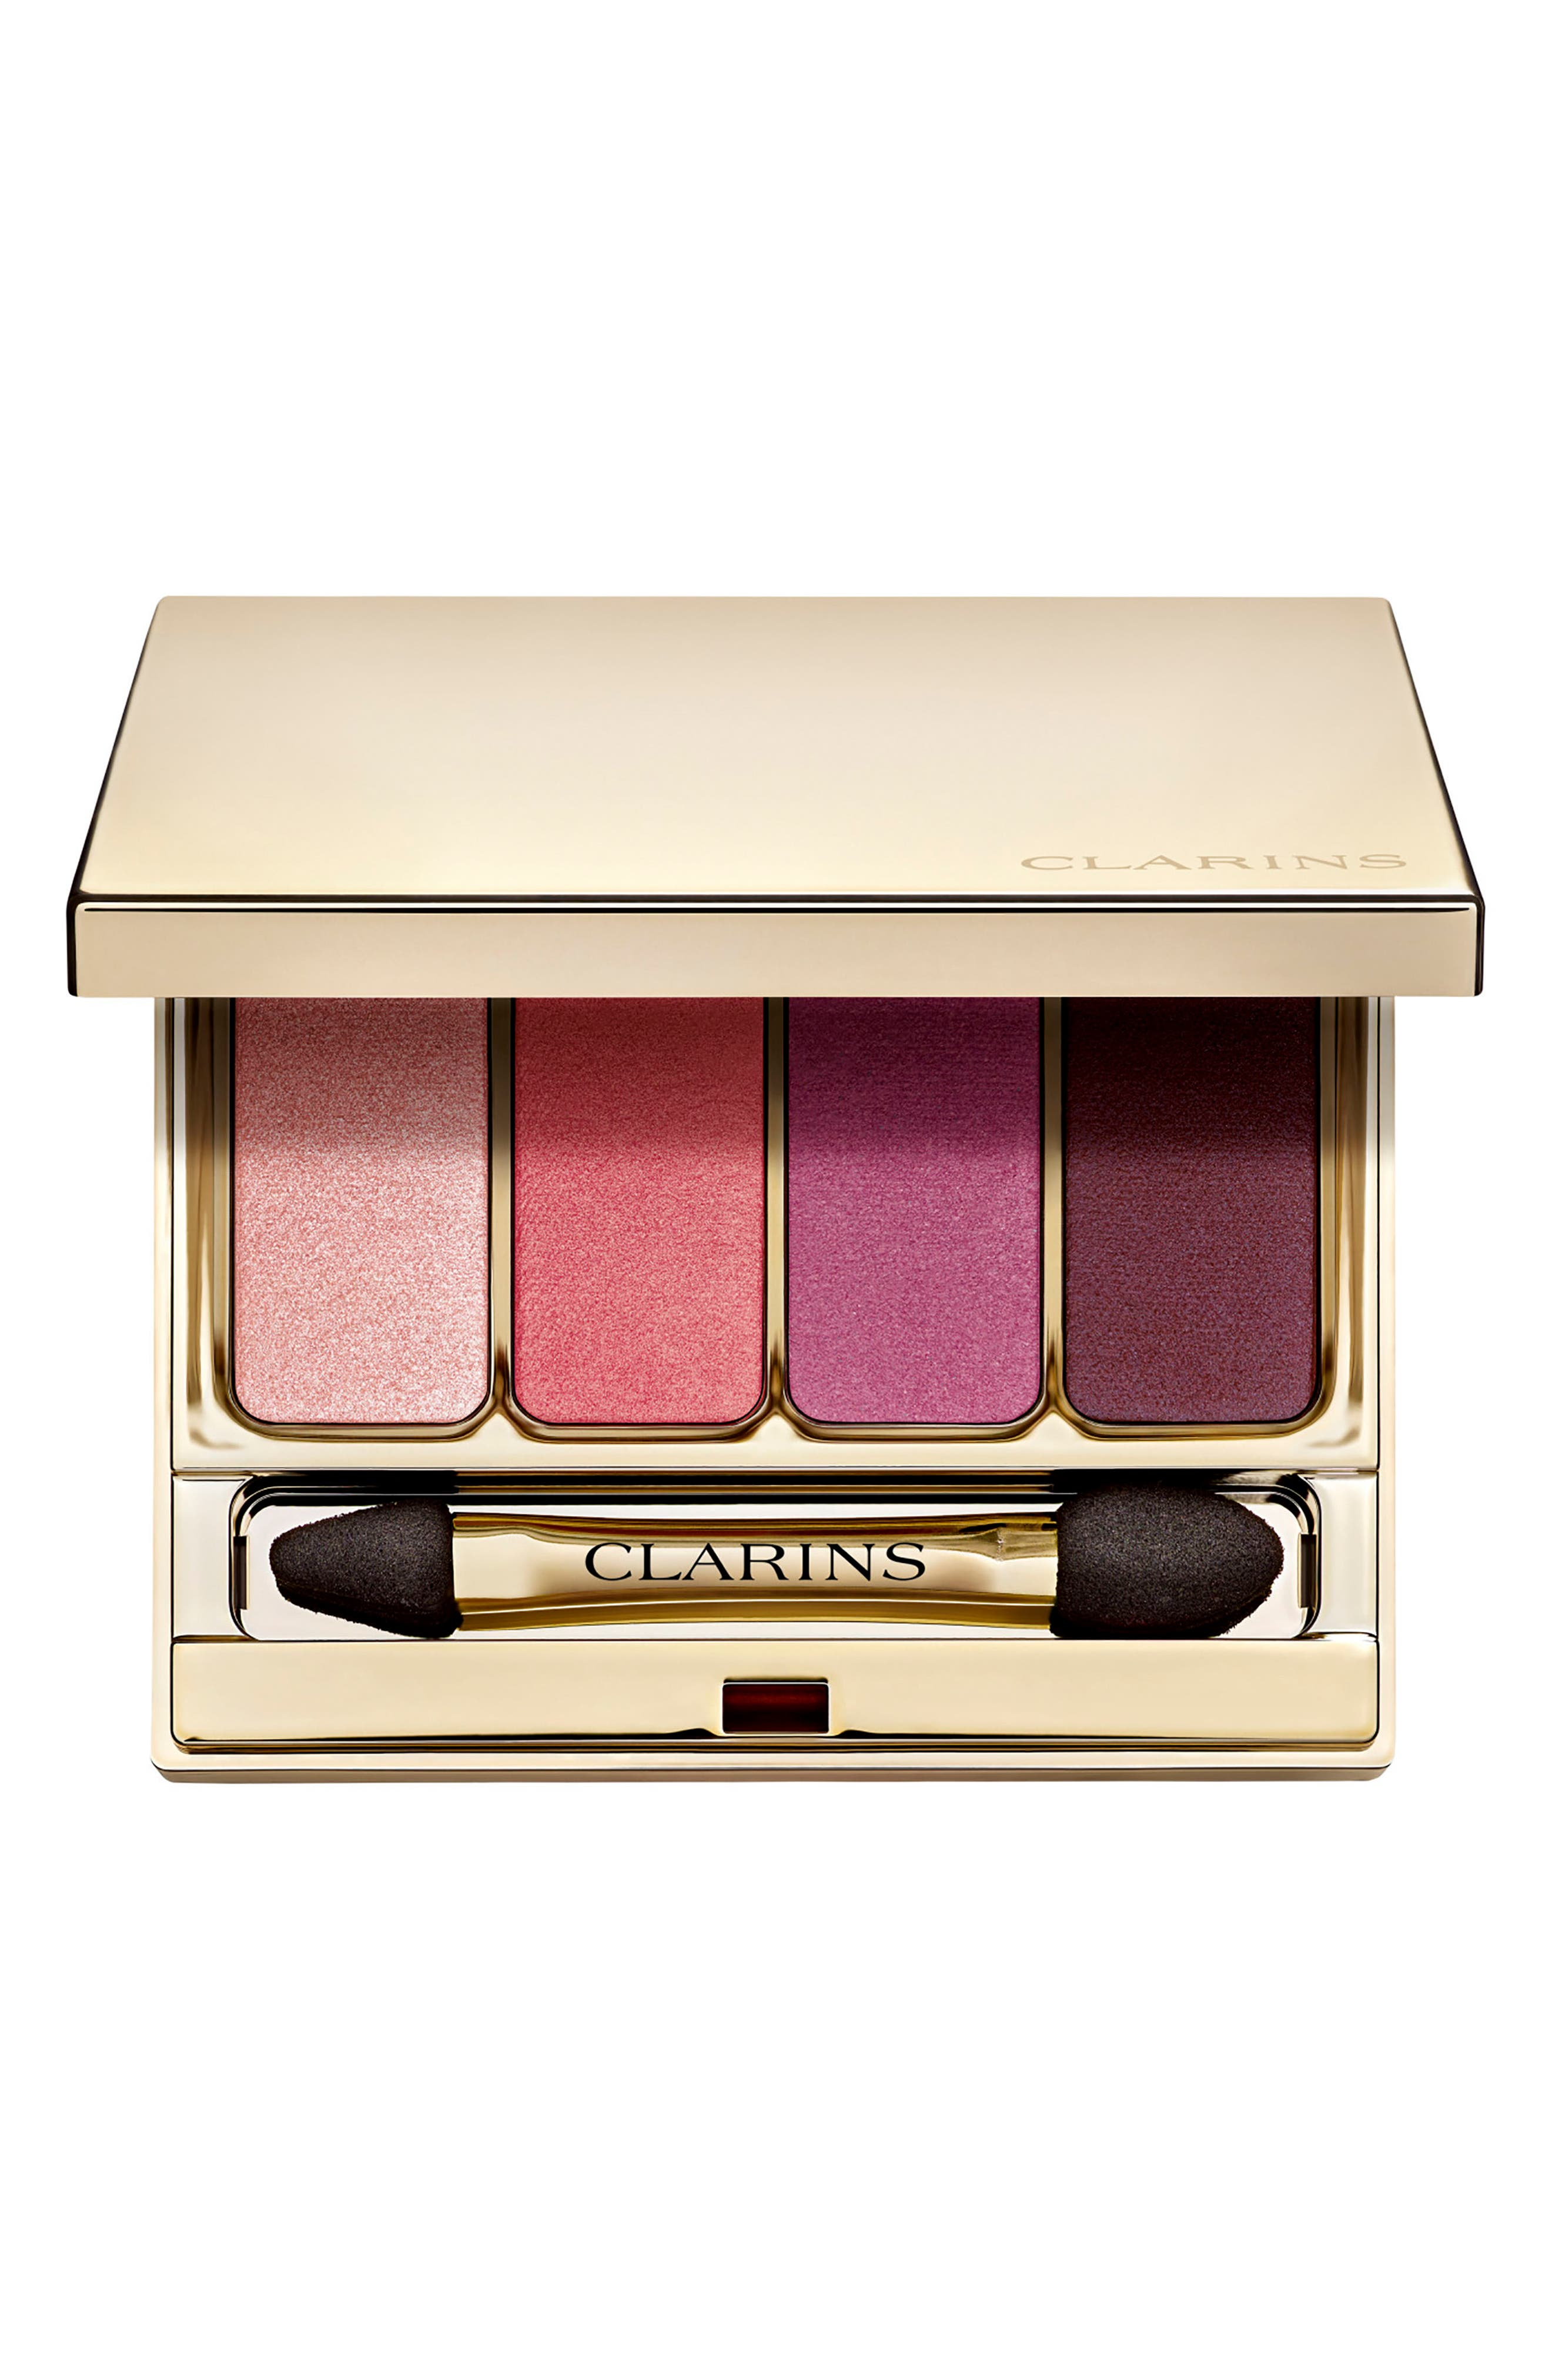 CLARINS,                             4-Color Eyeshadow Palette,                             Main thumbnail 1, color,                             07 LOVELY ROSE